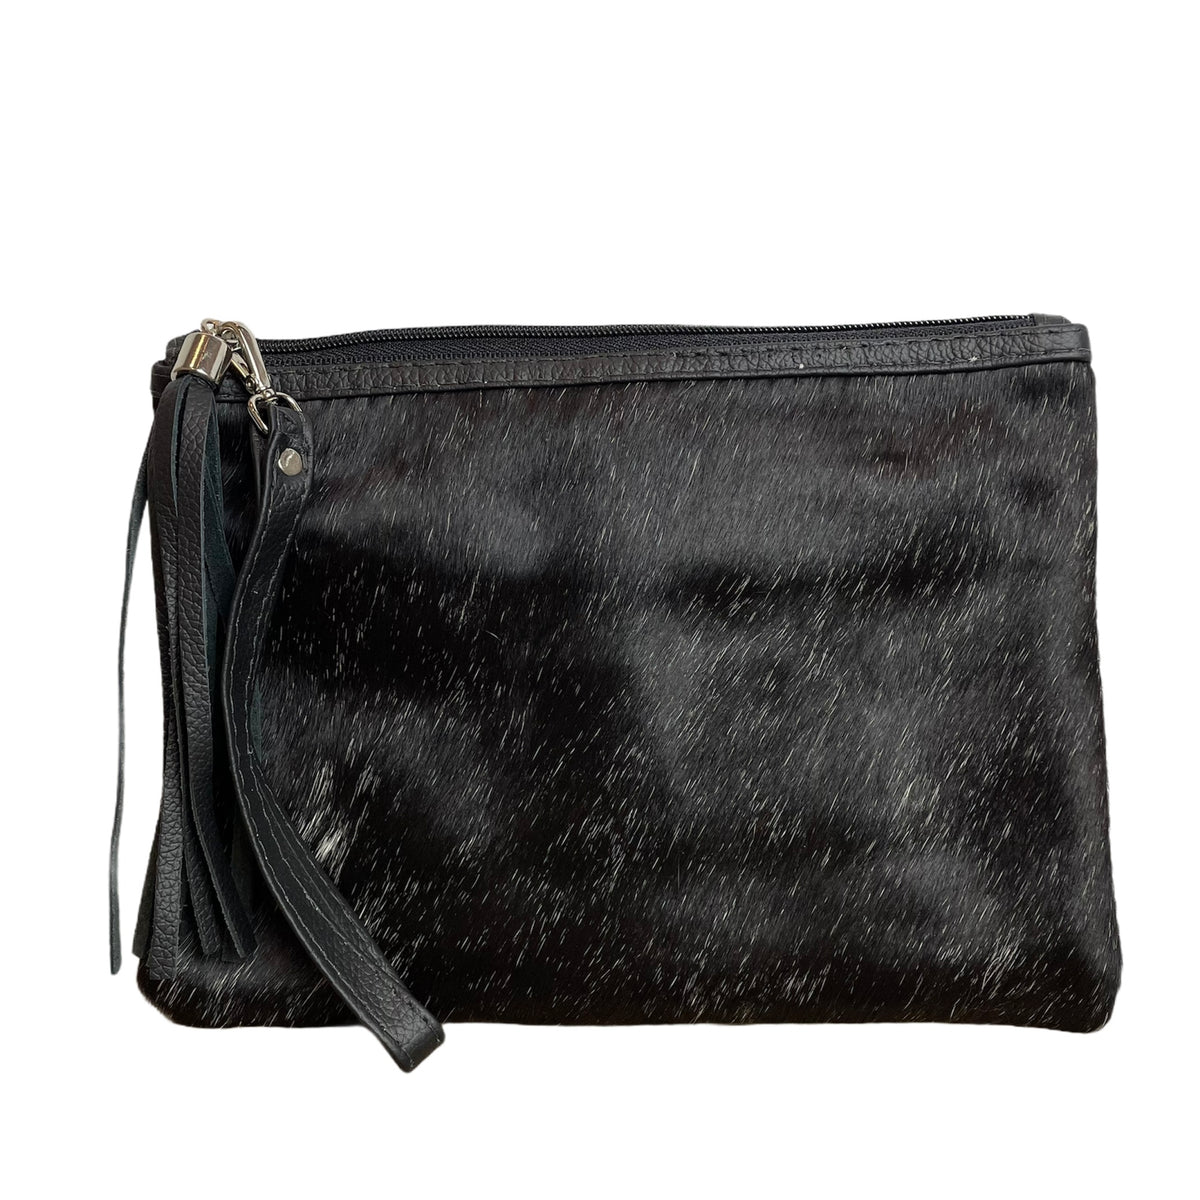 COWHIDE EVERYDAY SMALL CLUTCH - BLACK SPECKLE. Izel designs